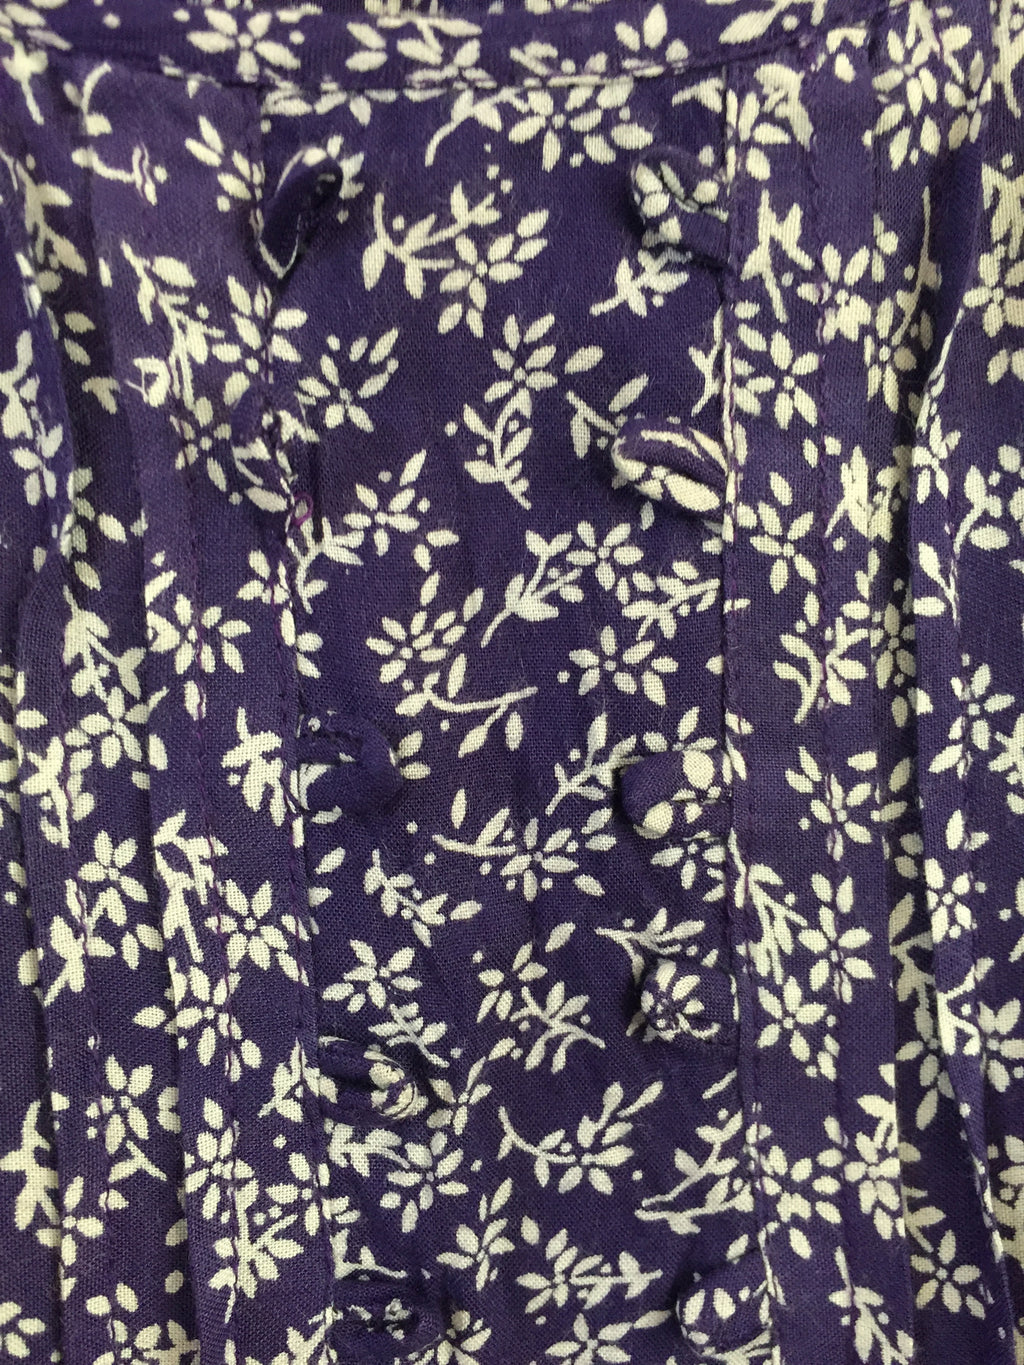 Back Tie, Purple and White Floral Top